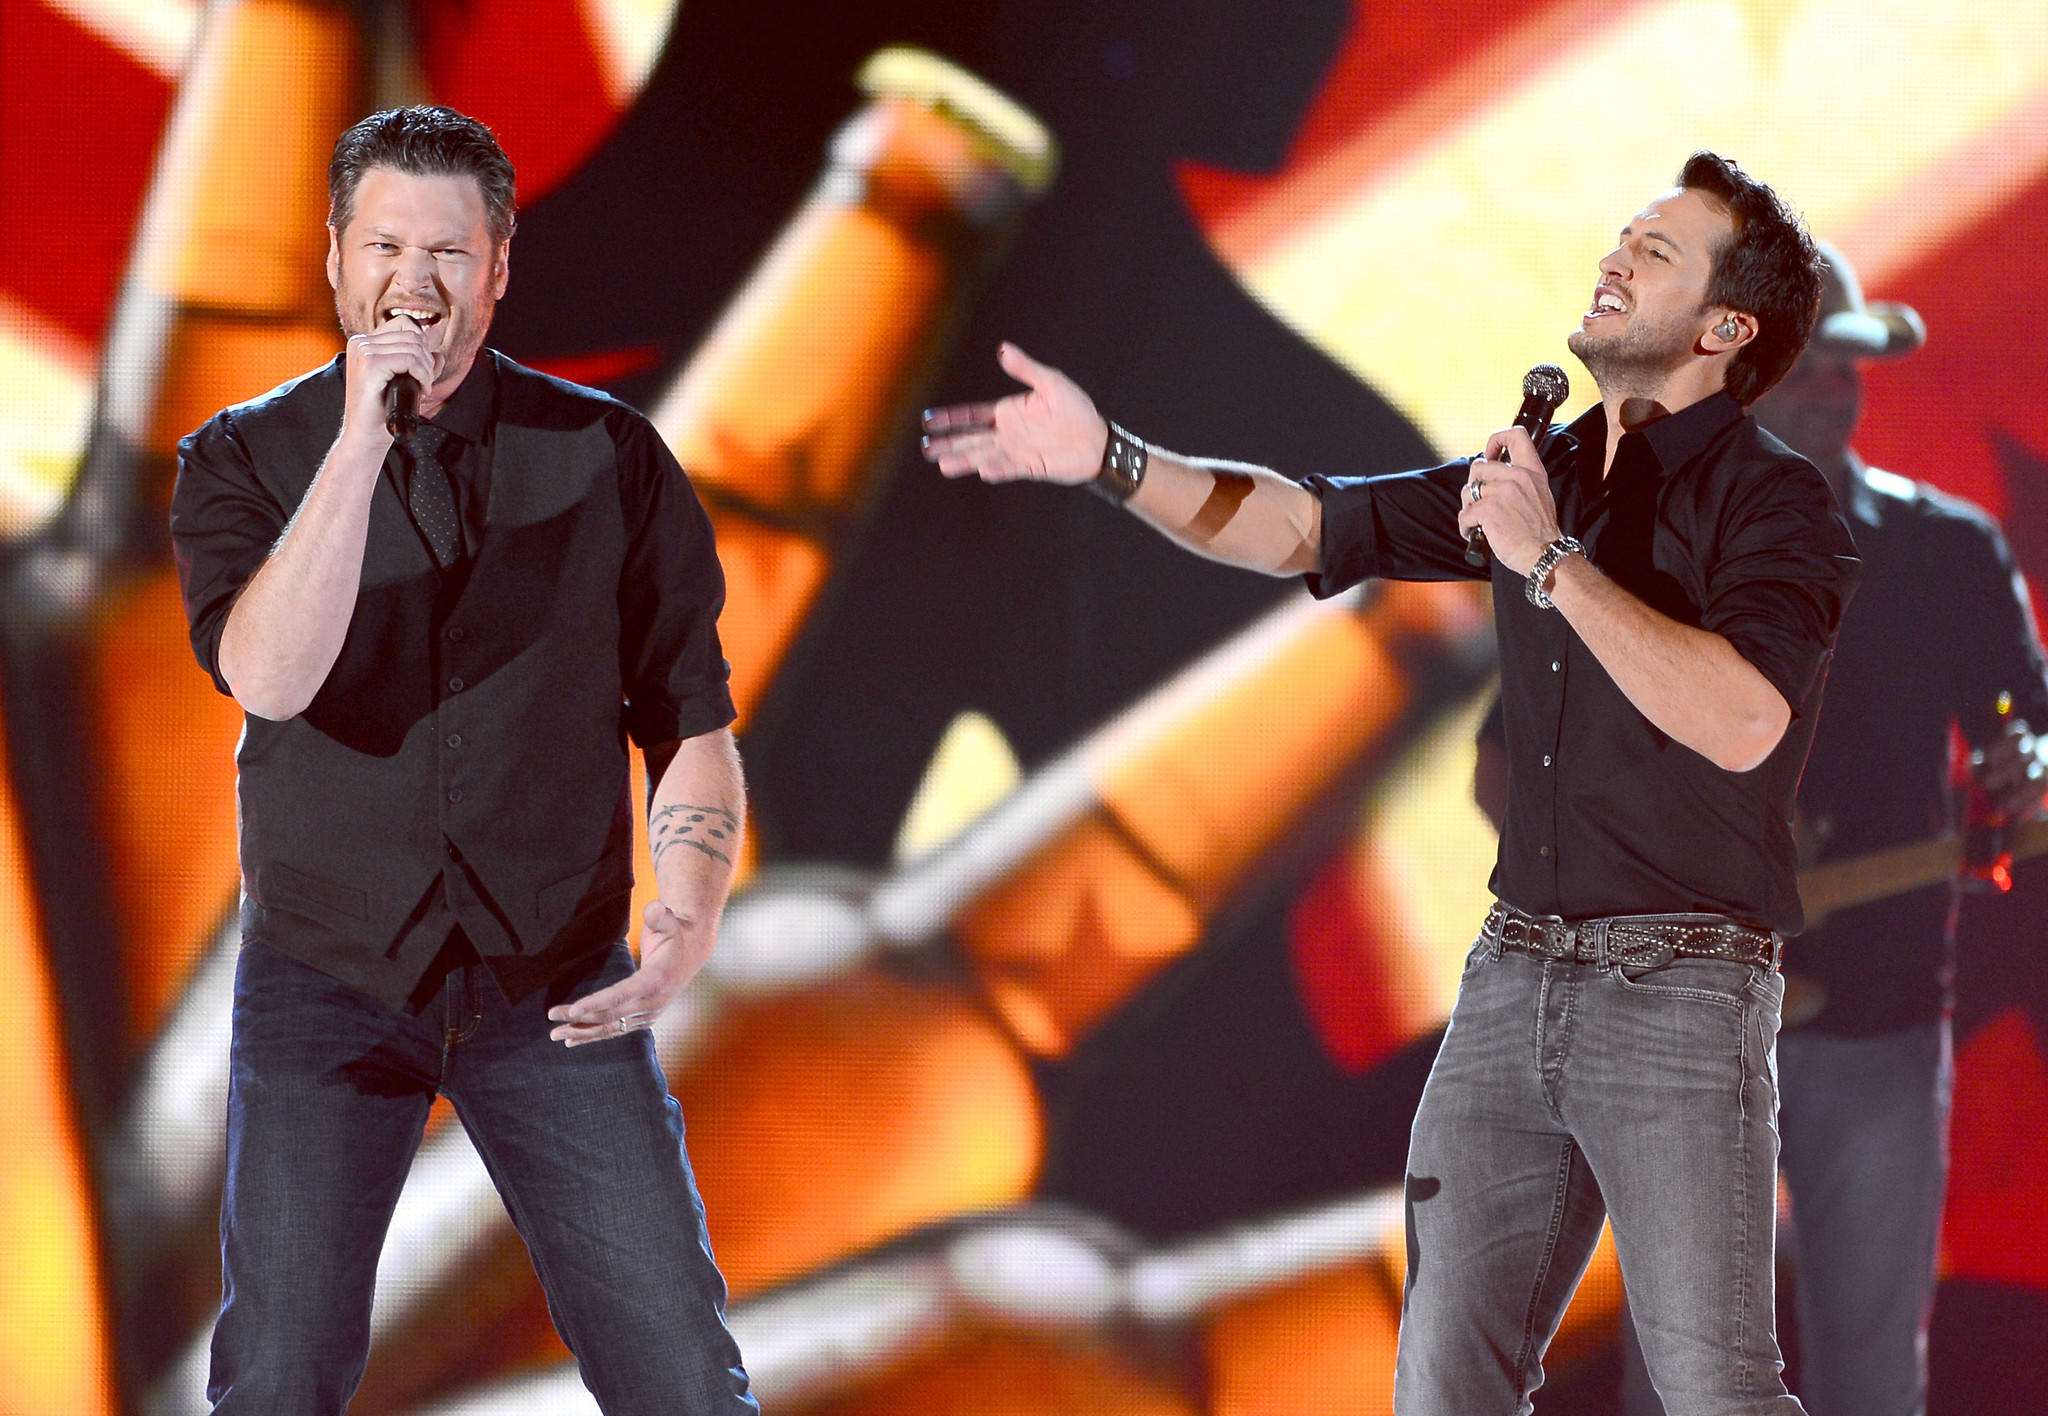 Last year's hosts Blake Shelton, left, and Luke Bryan are set to again lead the awards show April 6, part of a weeklong salute to country music.